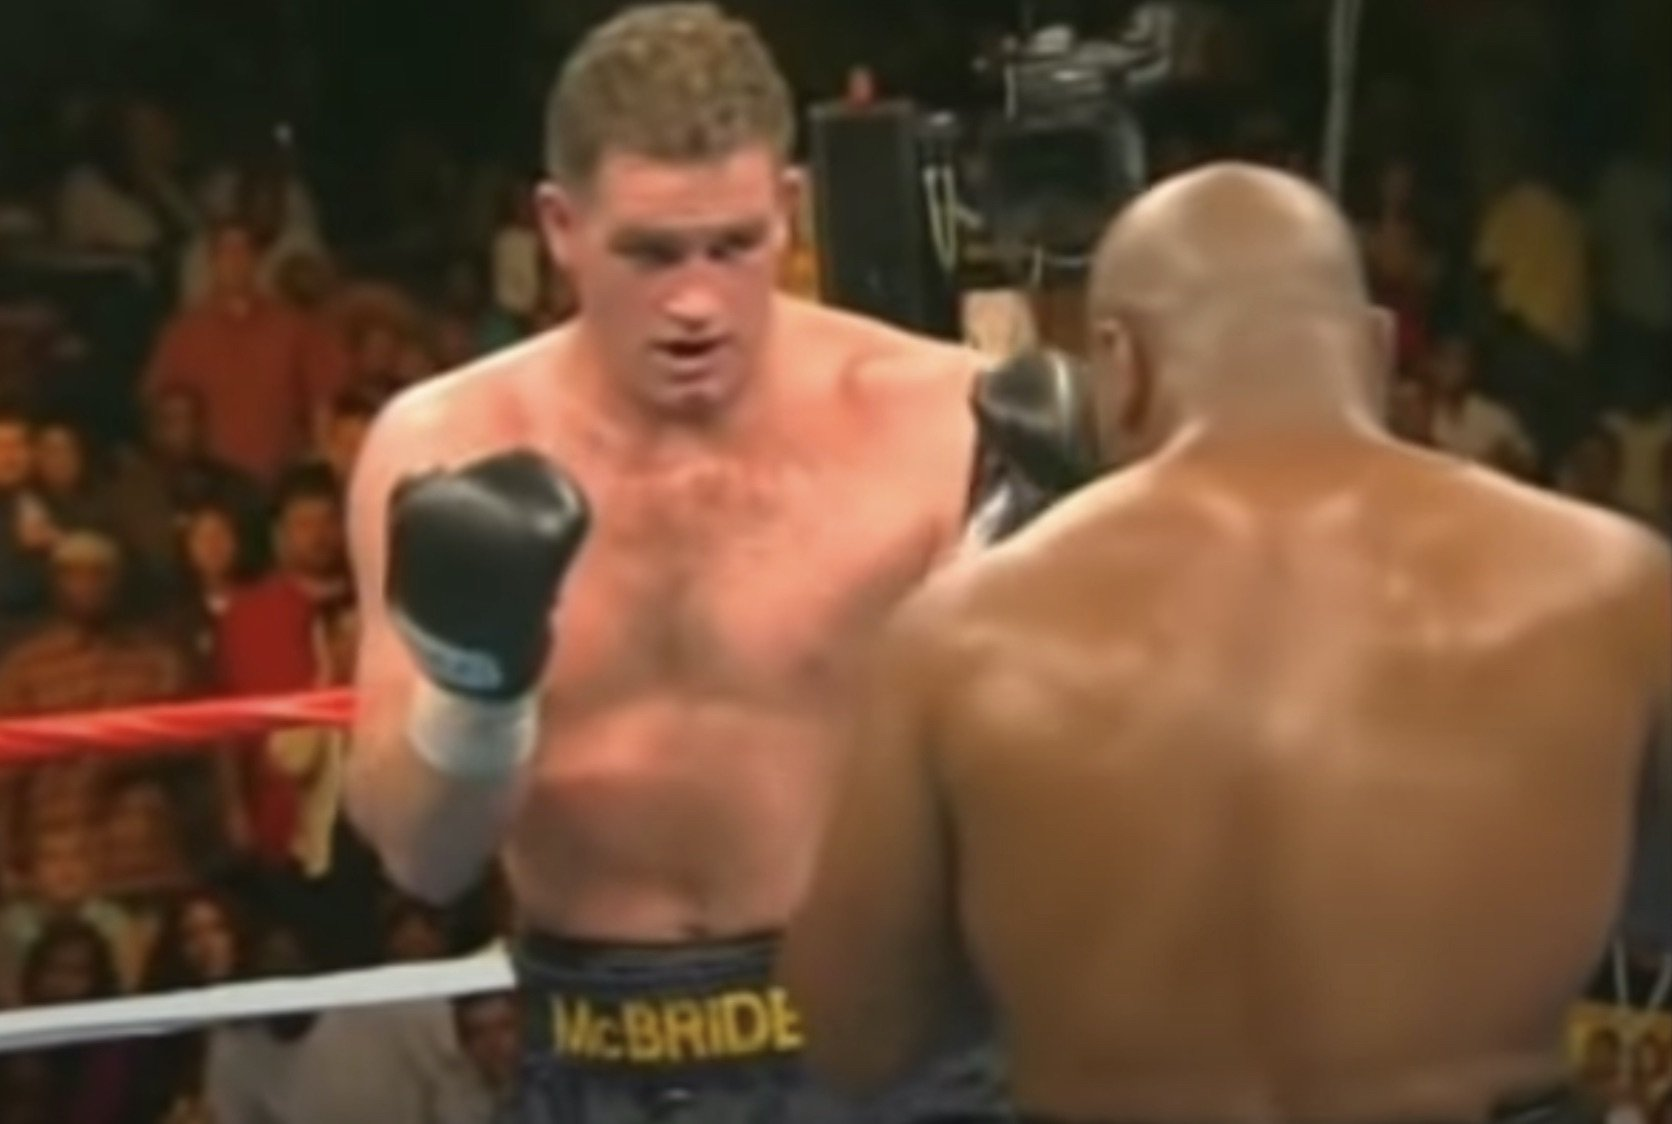 """Kevin McBride, Mike Tyson - Fans are in a lather due to how Mike Tyson looks sensational in those few seconds of video footage. Supportive claims of how Tyson """"has still got it,"""" how his speed is """"still there,"""" how the 53-year-old """"could still take out any heavyweight if he hit them"""" abound. But looking great for a few seconds in a training clip means almost nothing at all in comparison to how Tyson would cope in a real fight."""